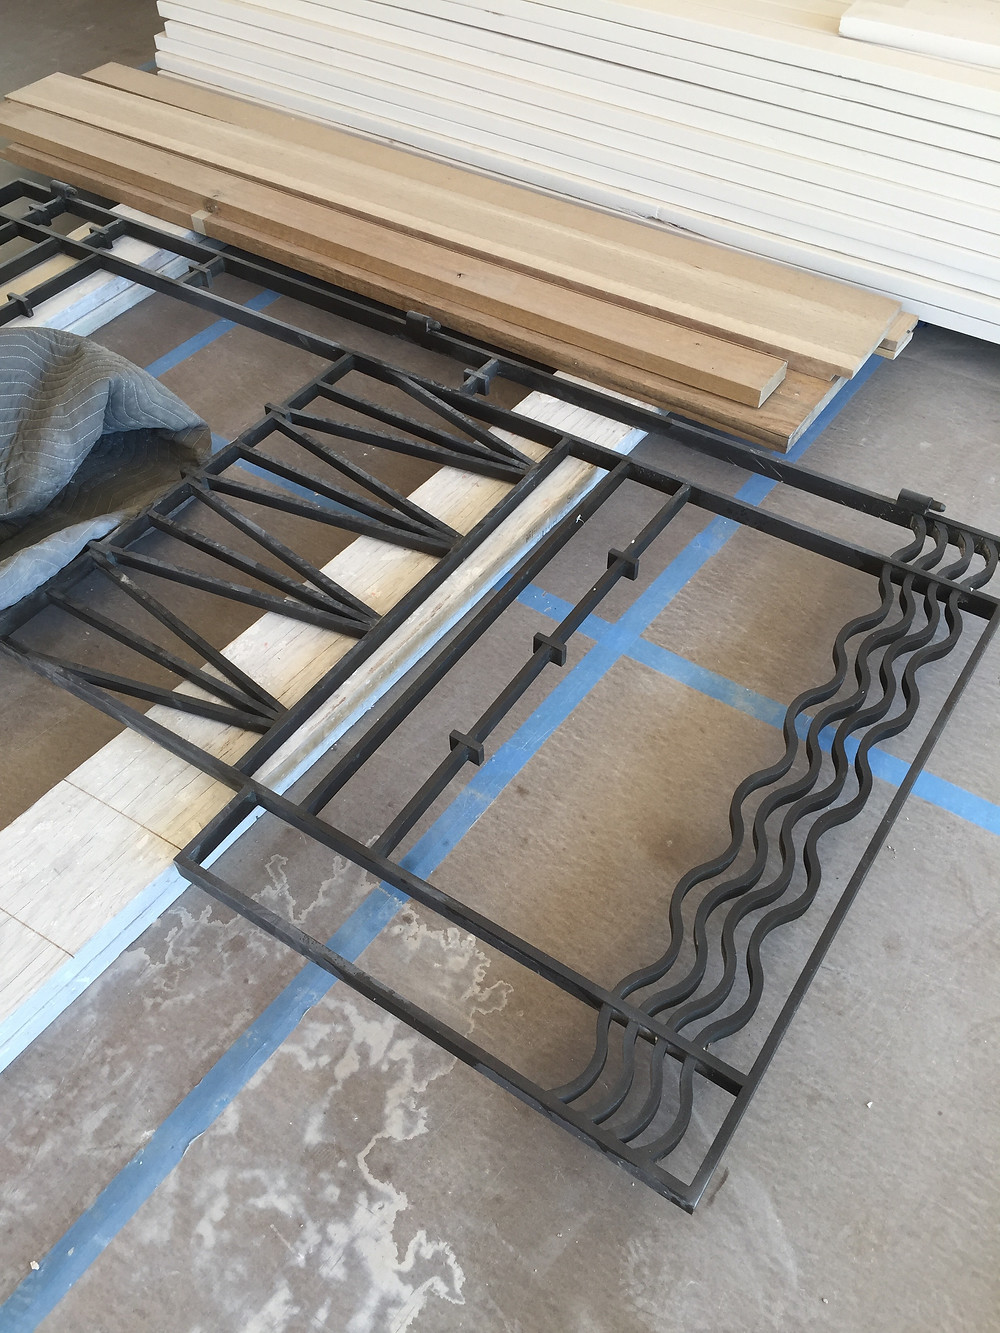 Wrought iron door grill for La Ladera Residence